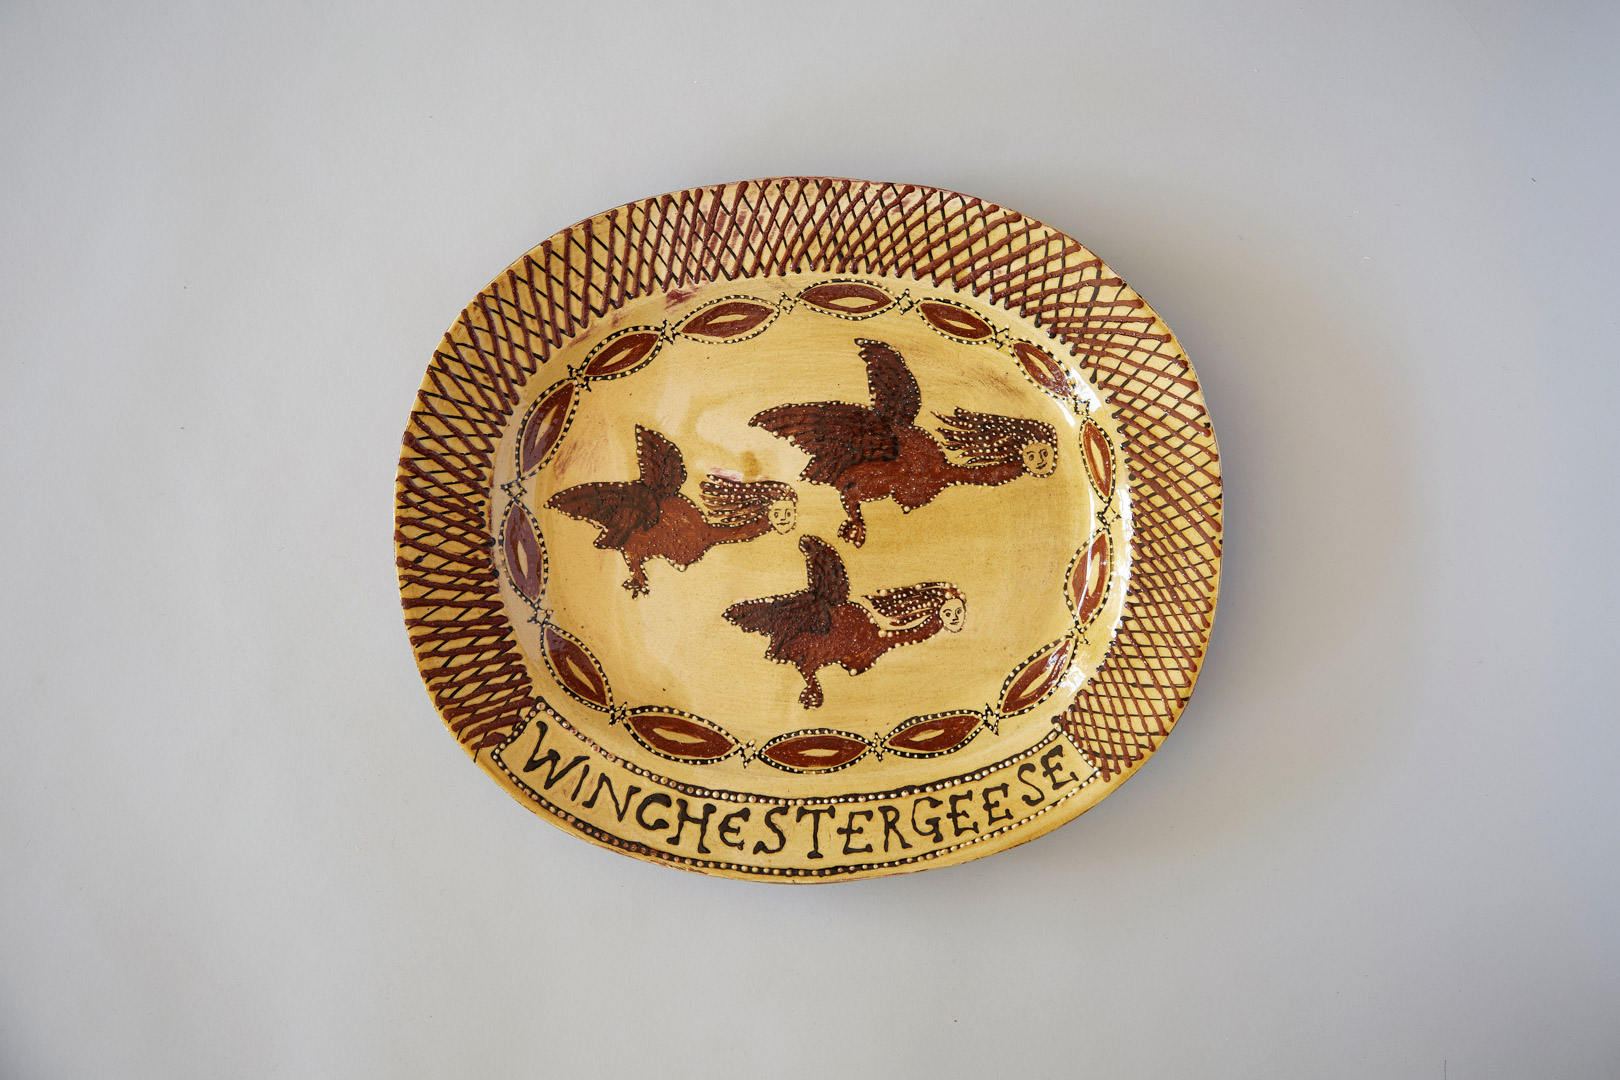 Winchester Geese plate | Museum of Sex Objects